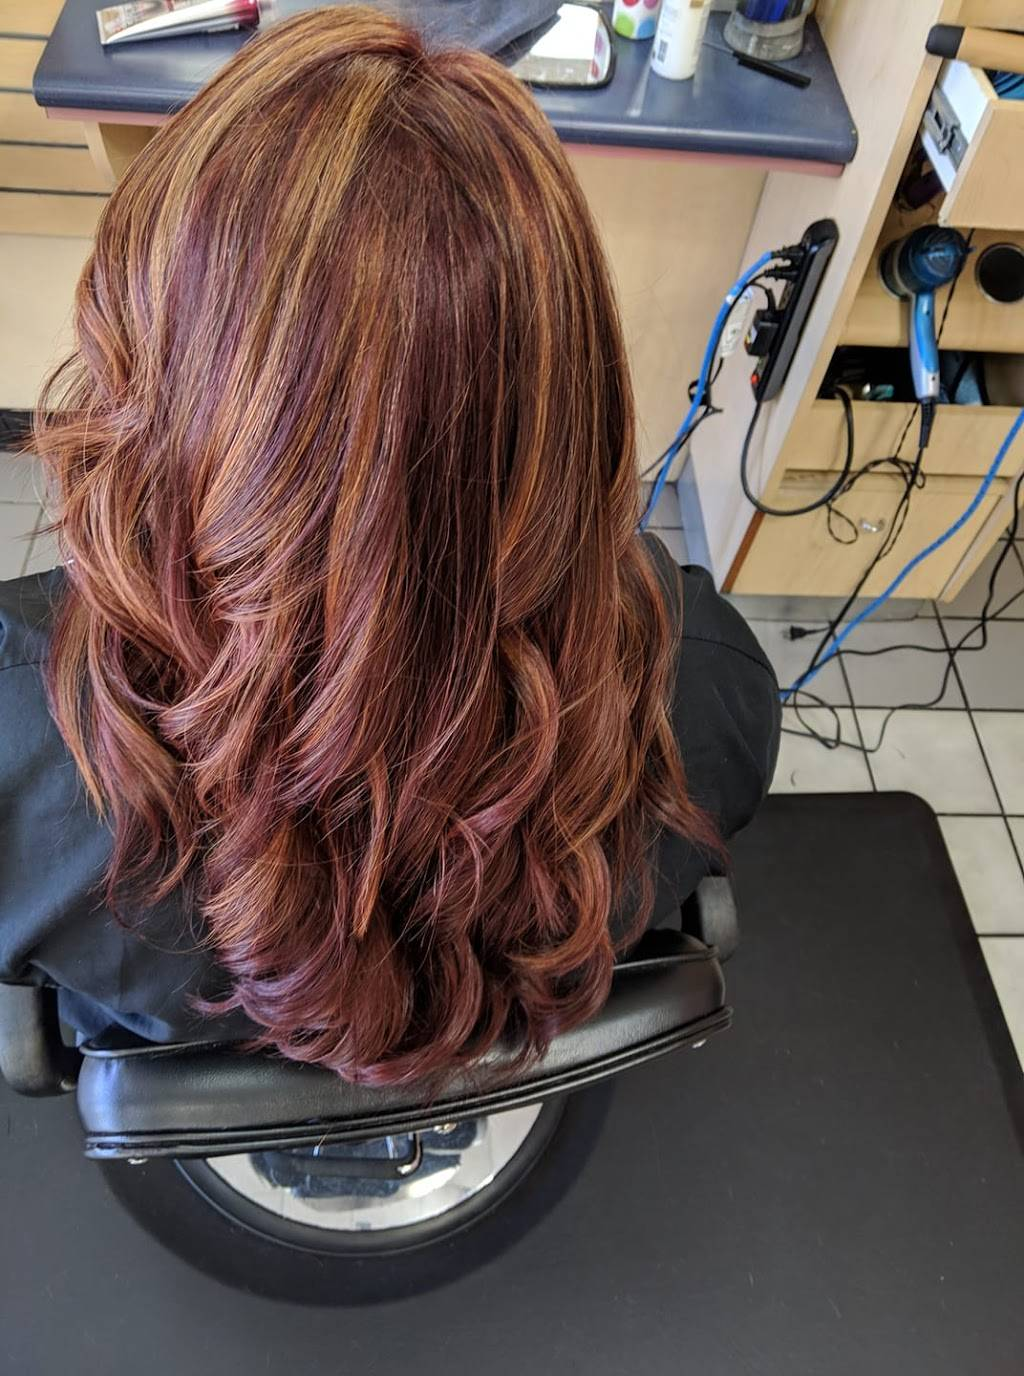 Fantastic Sams Cut & Color - hair care  | Photo 8 of 10 | Address: 2480 W Brandon Blvd, Brandon, FL 33511, USA | Phone: (813) 681-7267